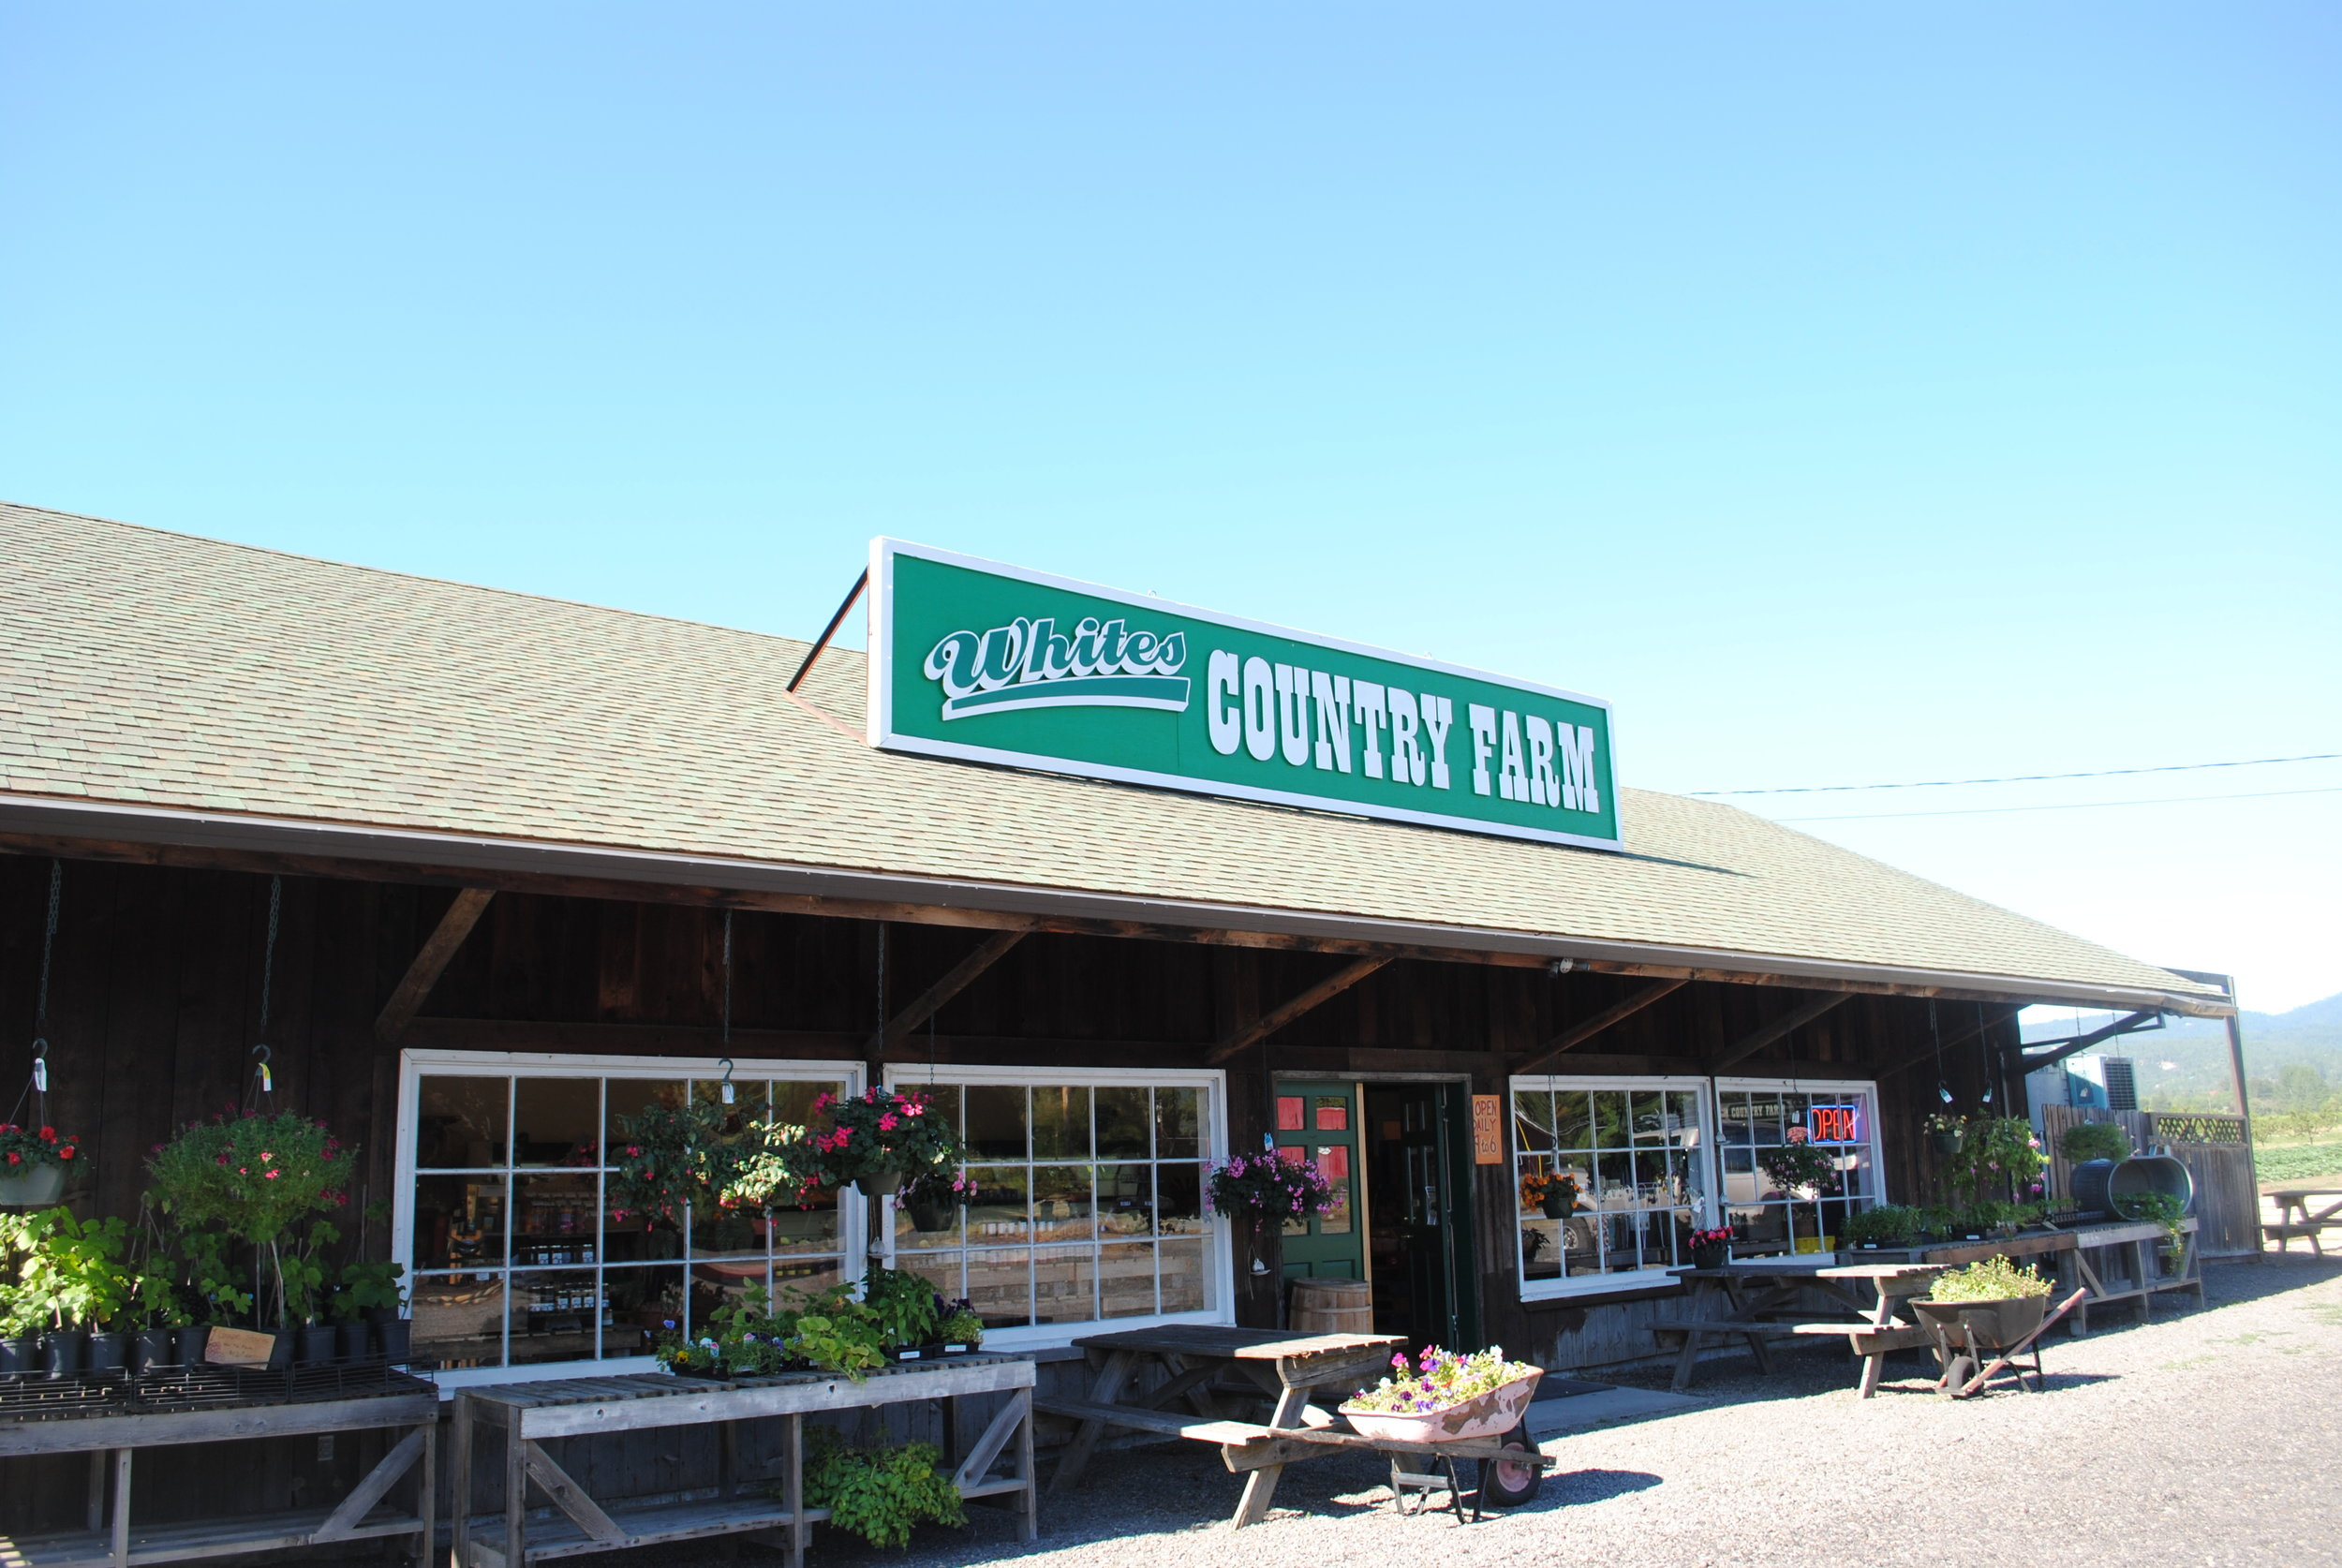 Whites Country Farm - Medford, Oregon - Rogue Valley - Jackson County - Southern Oregon (22).JPG